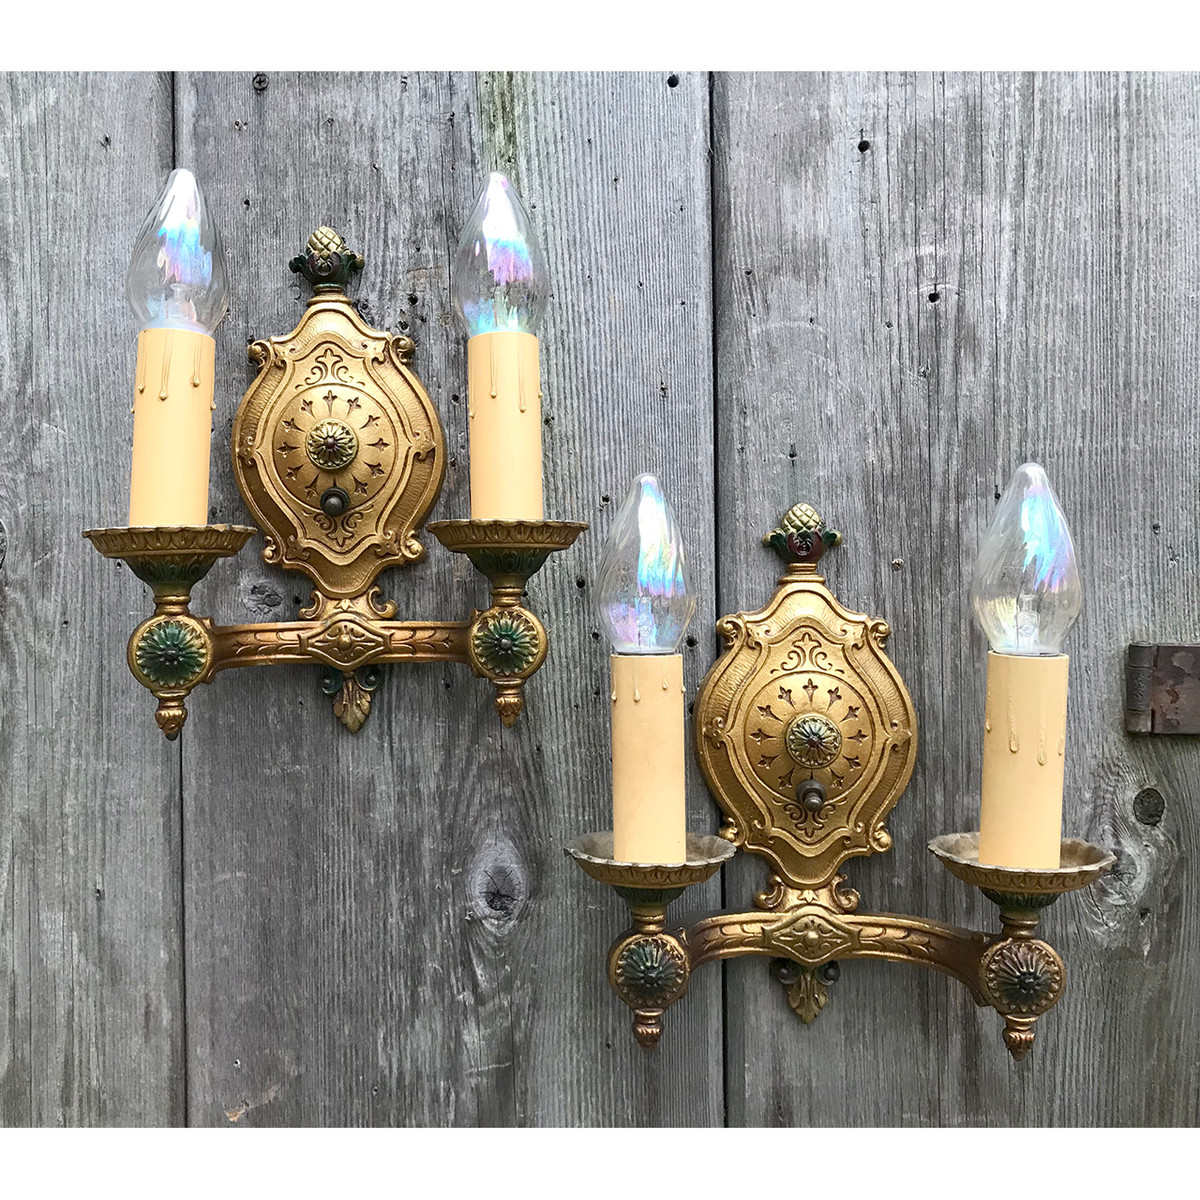 L18171 - Pair of Antique Tudor Revival Double Arm Candle Sconces